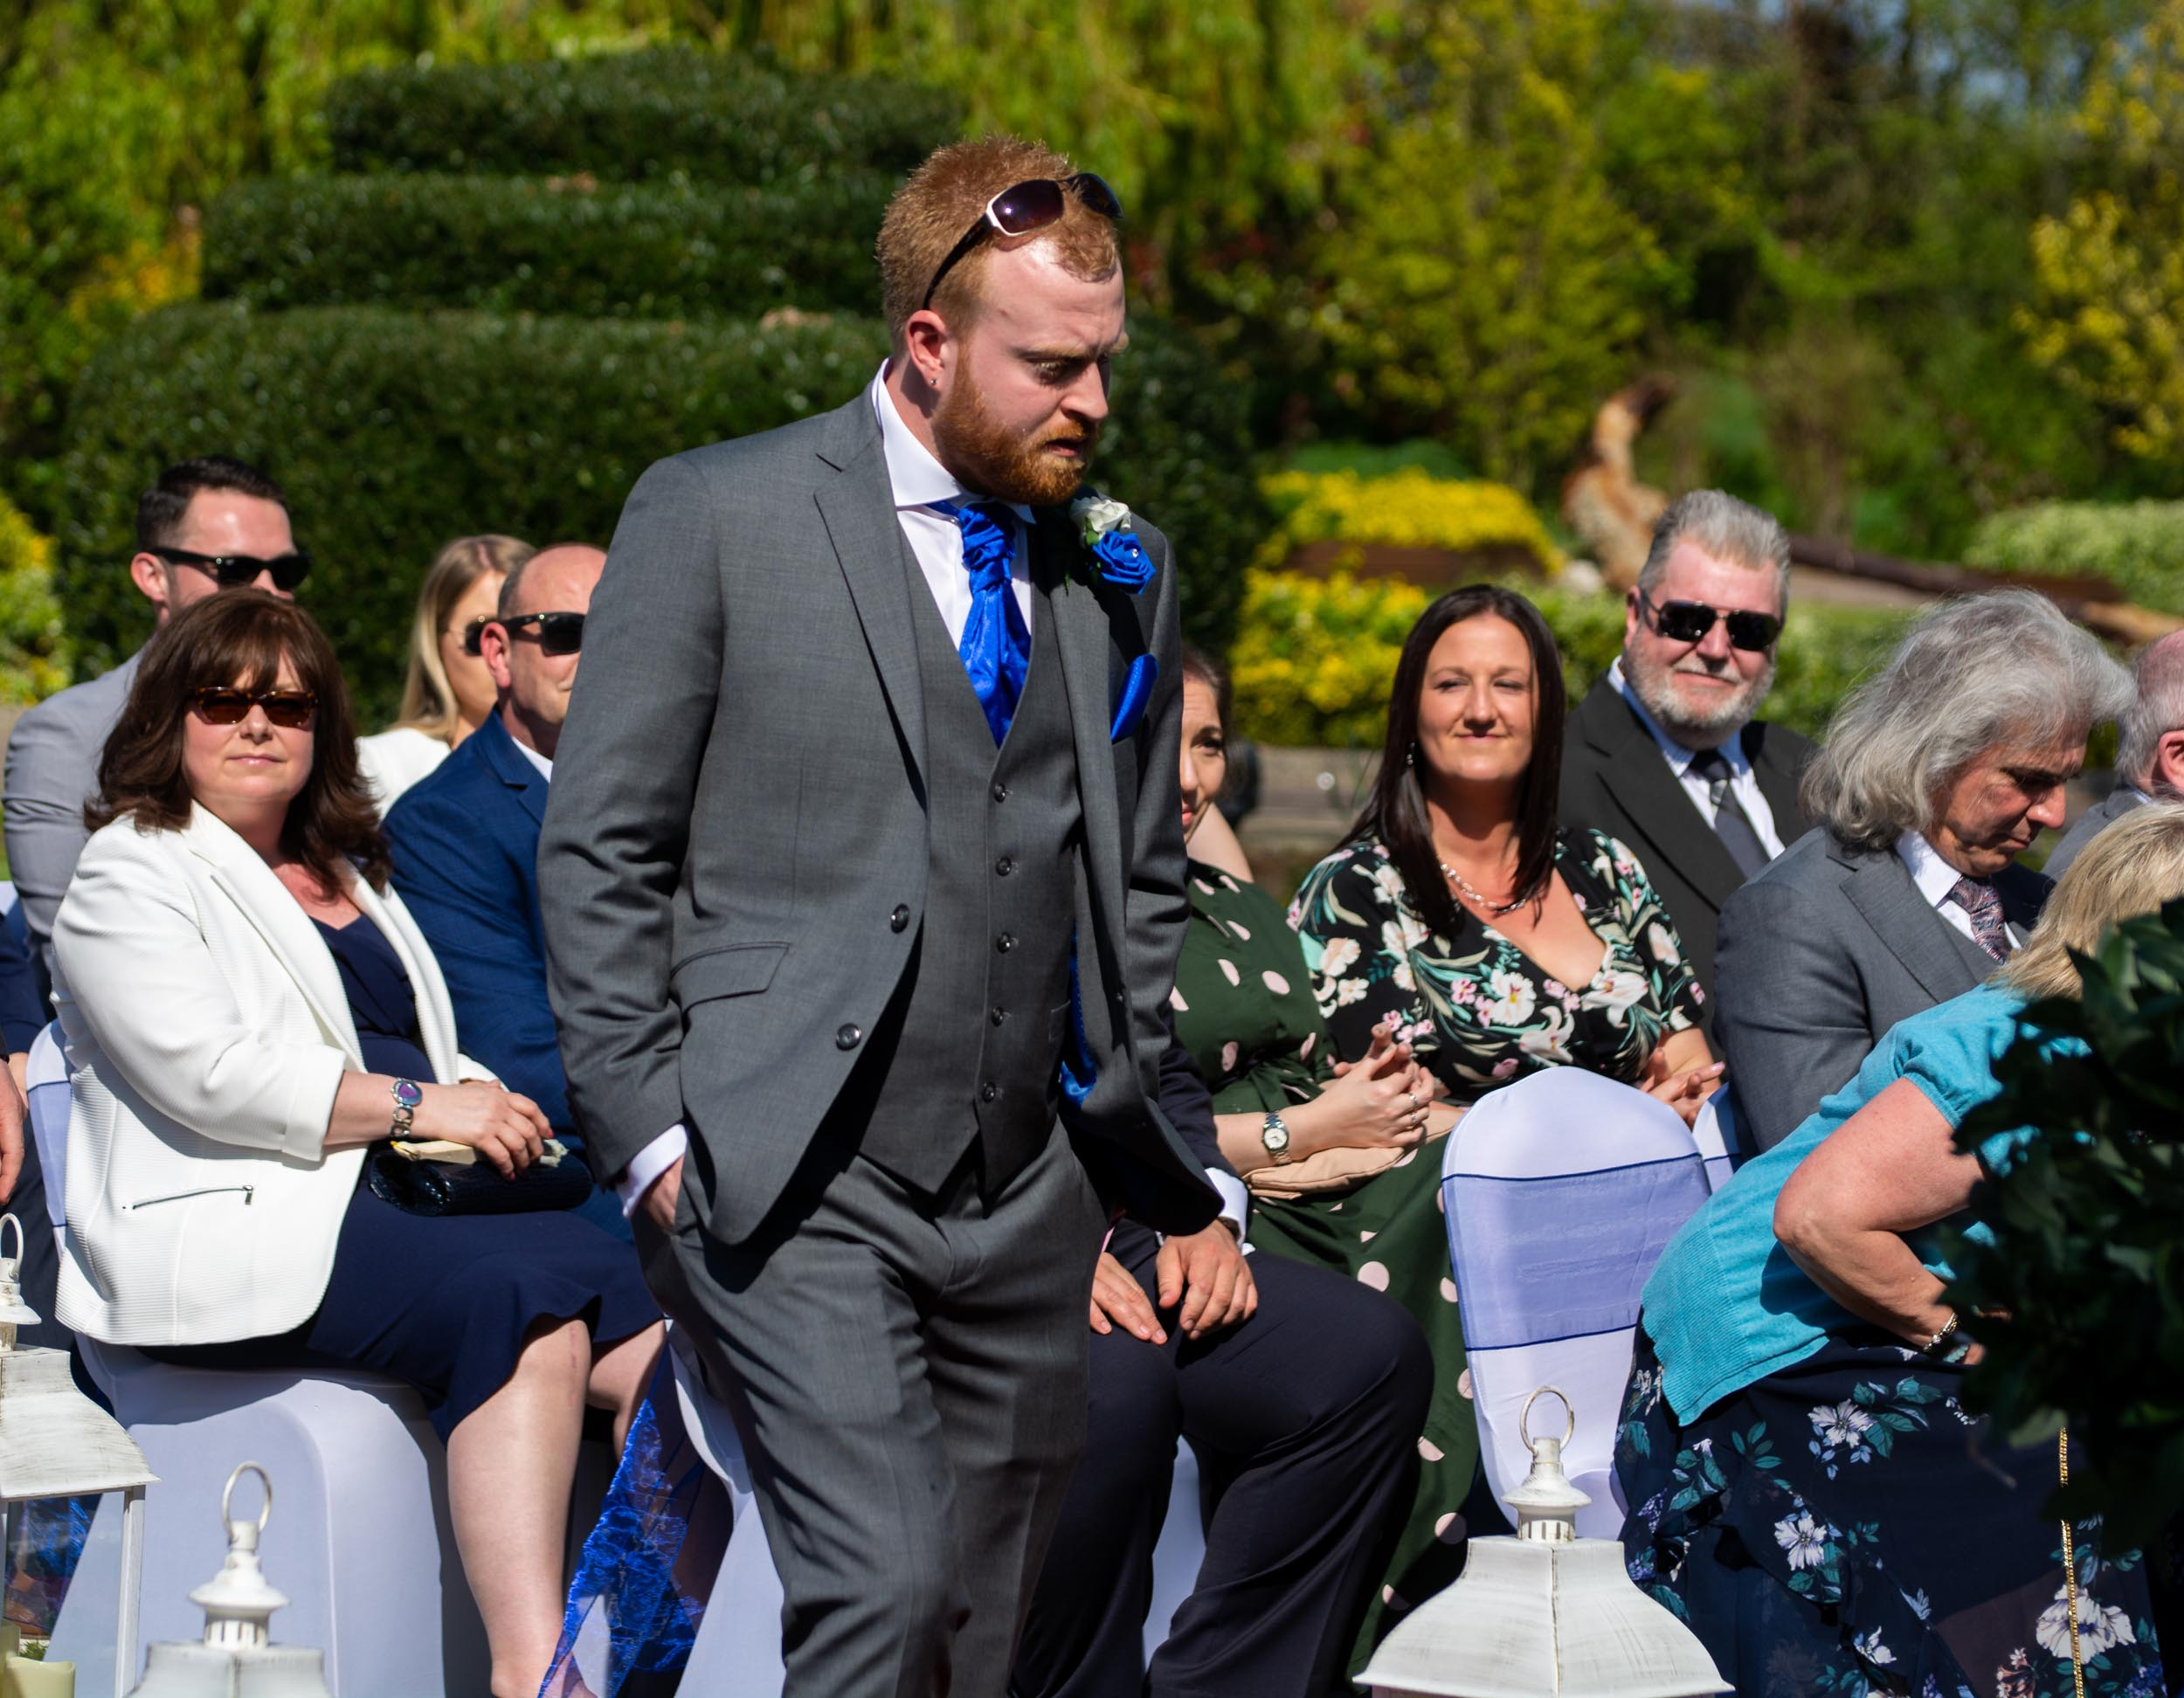 190420-Wedding-Ceremony-outdoors-The-Old-Rectory-027.jpg